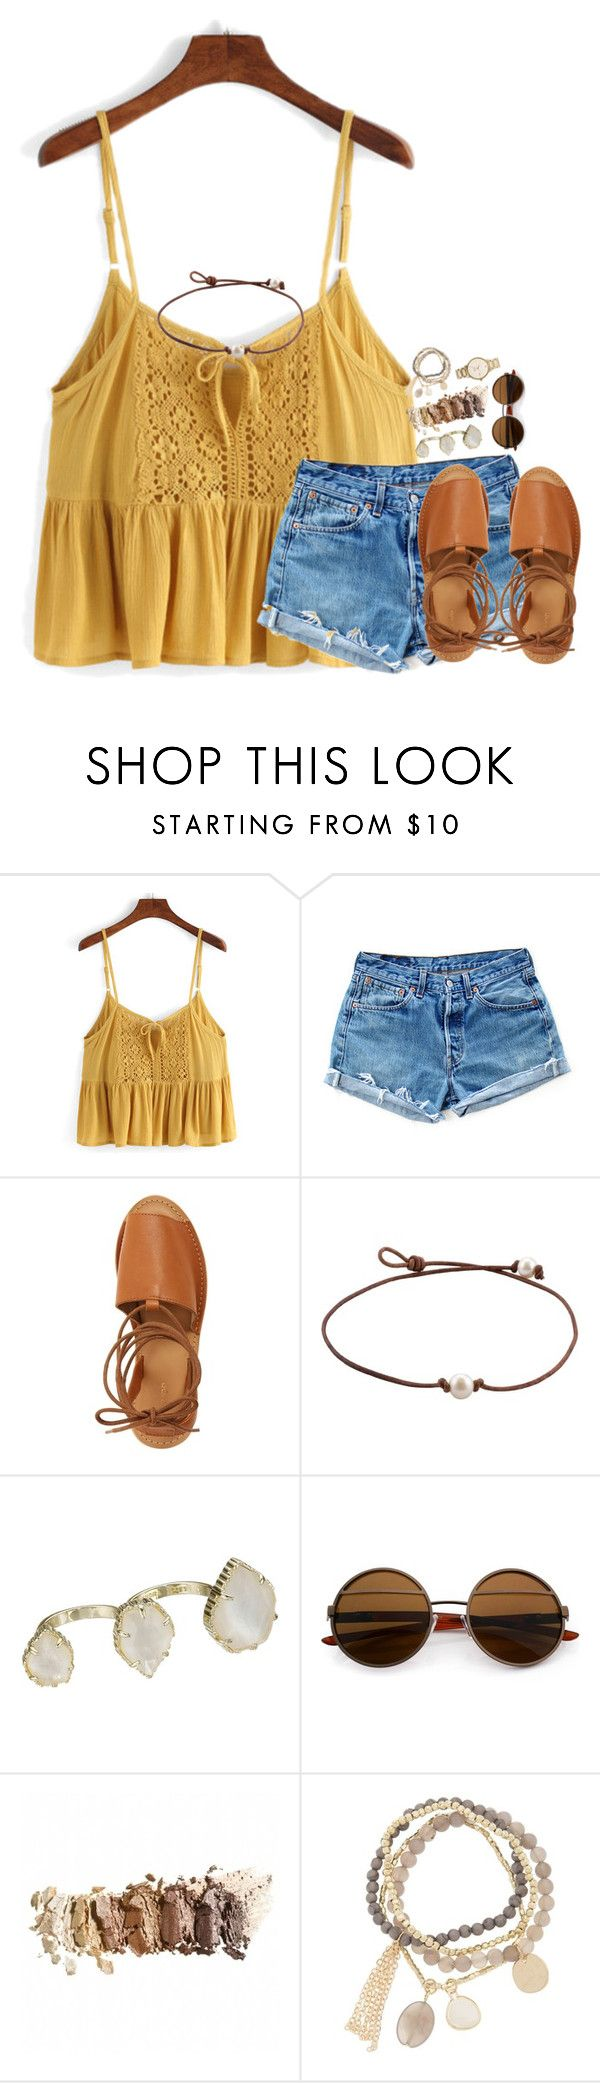 """stop staring @me"" by kate-elizabethh ❤ liked on Polyvore featuring Levi's, Topshop, Kendra Scott, DesignSix and Kate Spade"